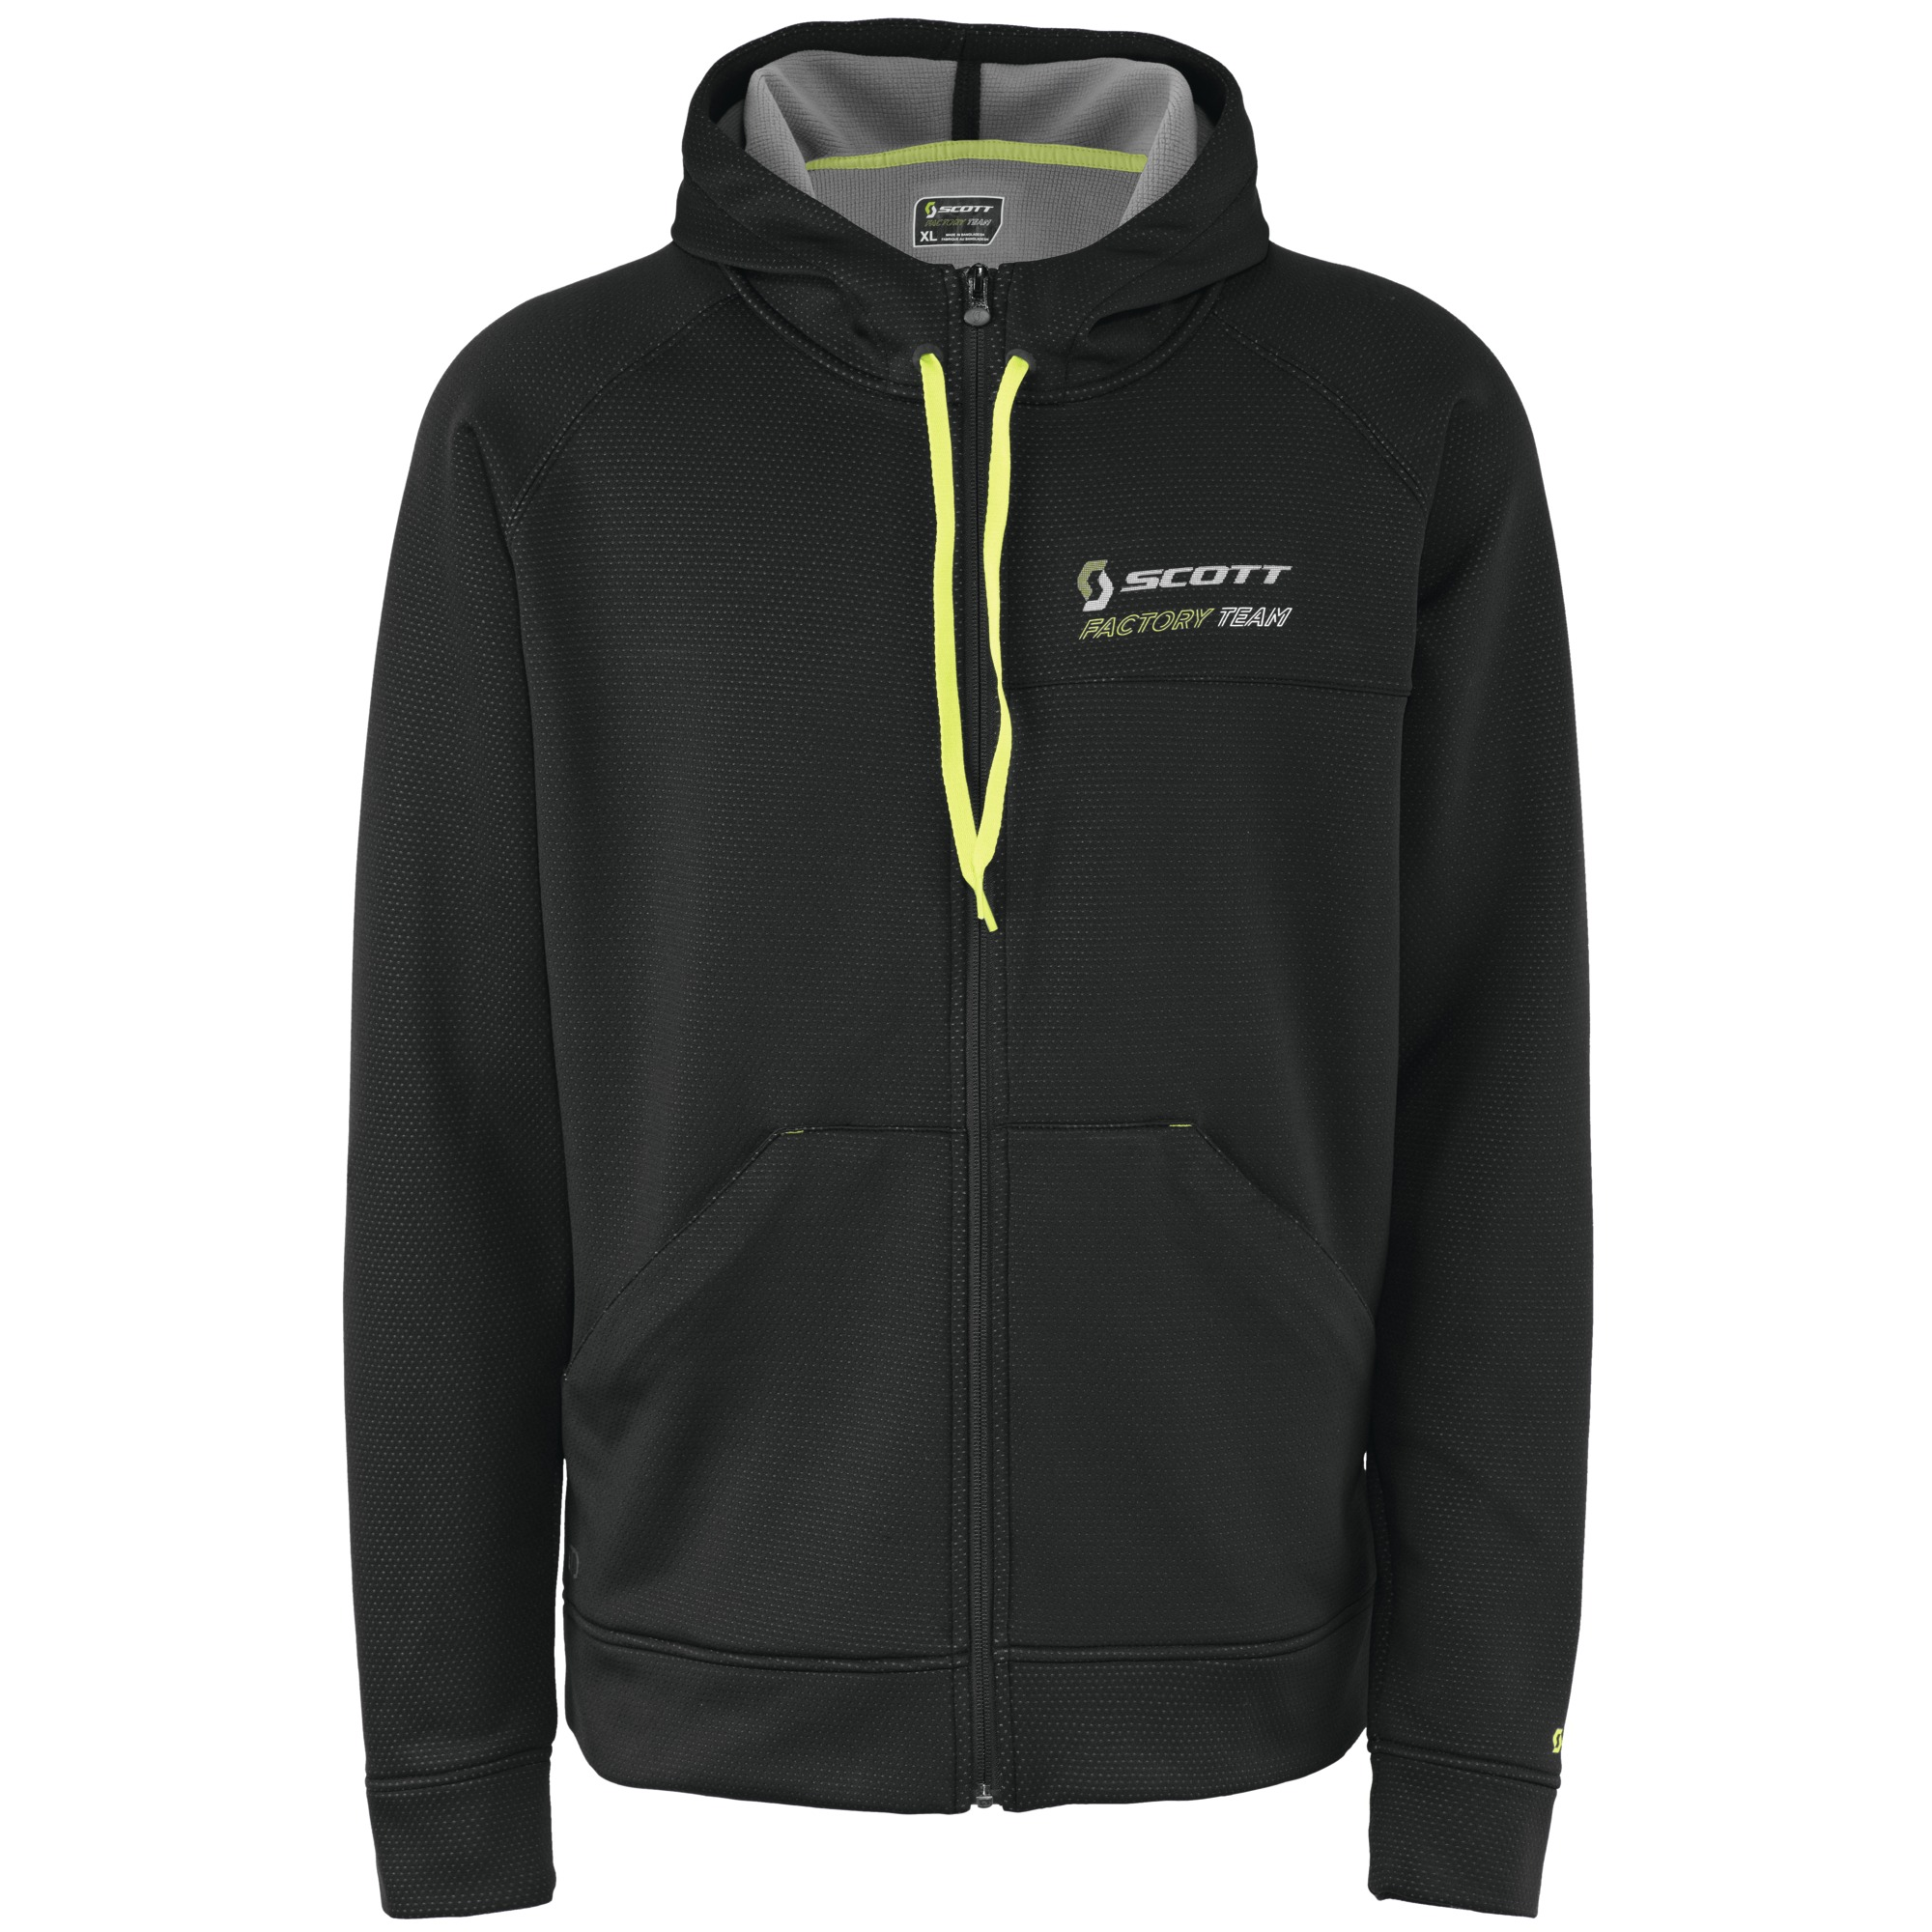 SCOTT FACTORY TEAM L/SL HOODY